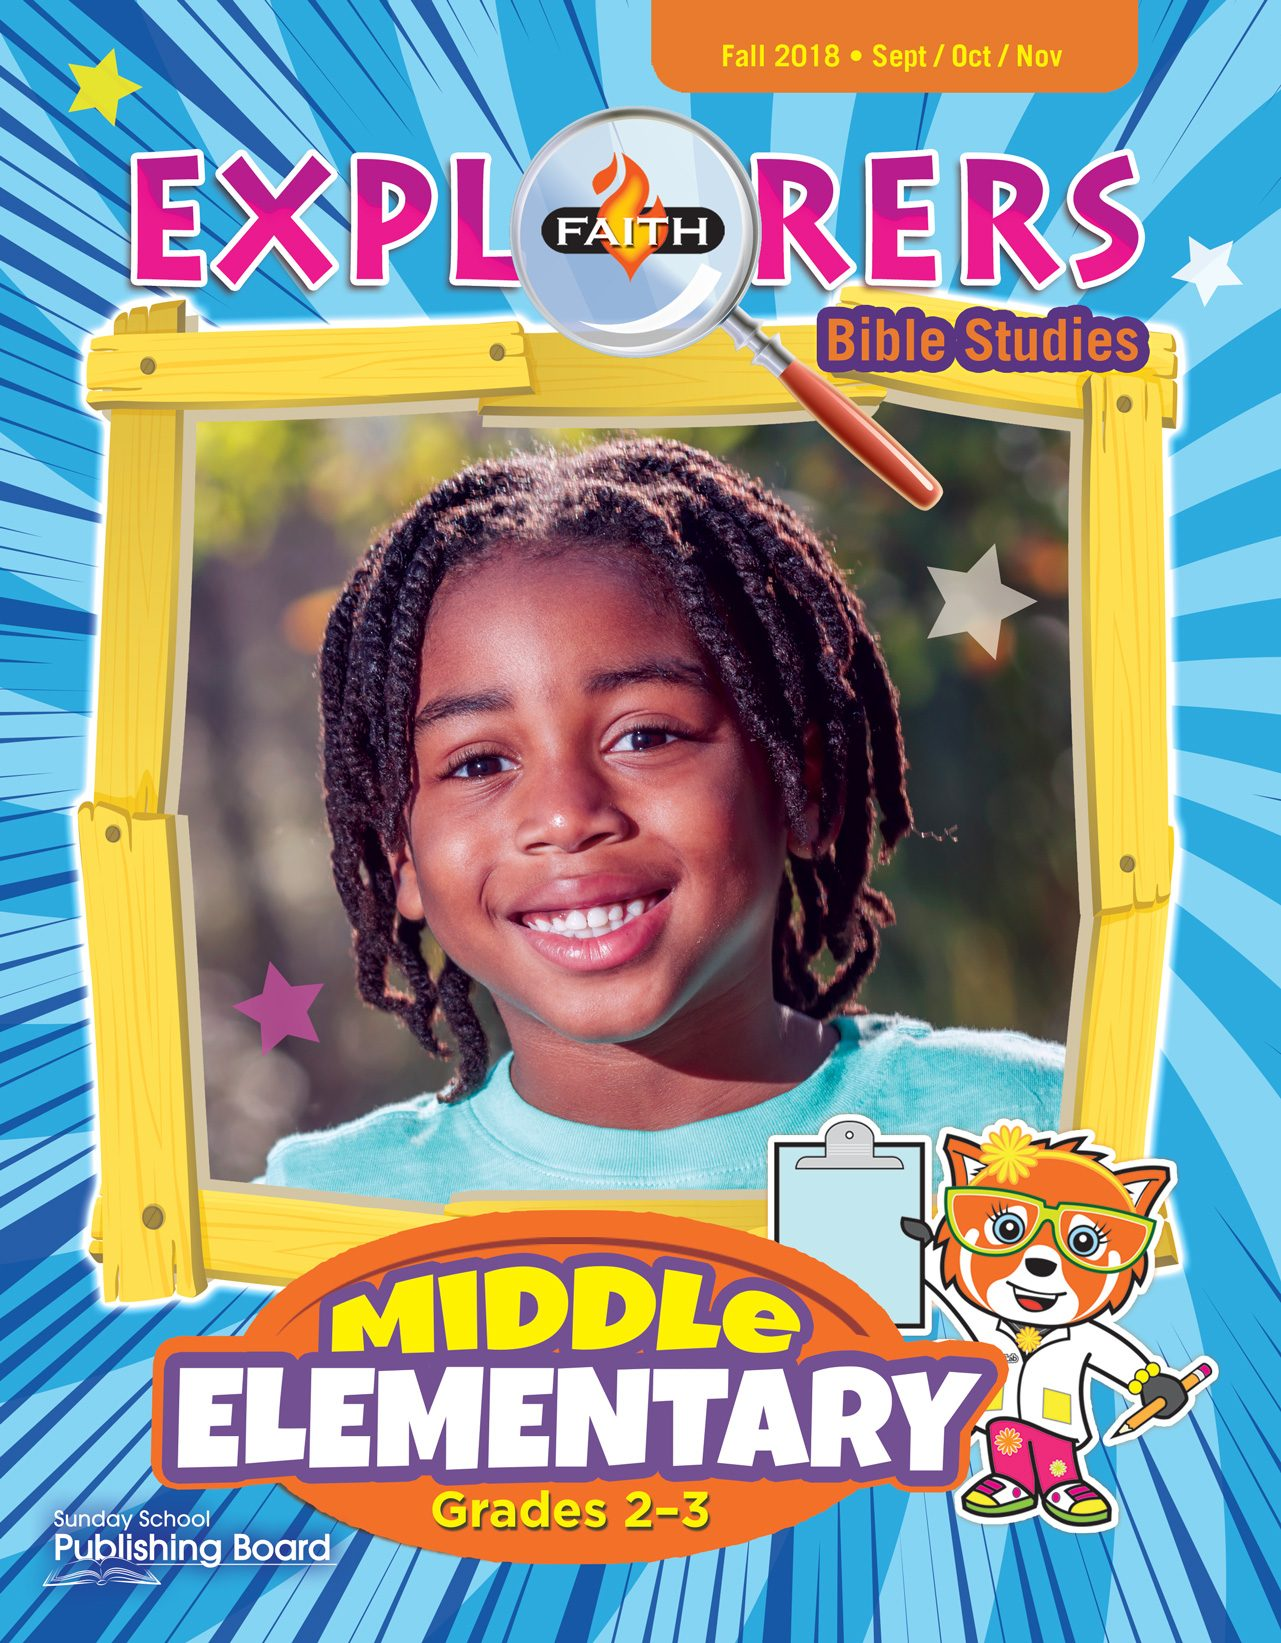 Faith Explorers Bible Studies, Middle Elementary (Grades 2-3)